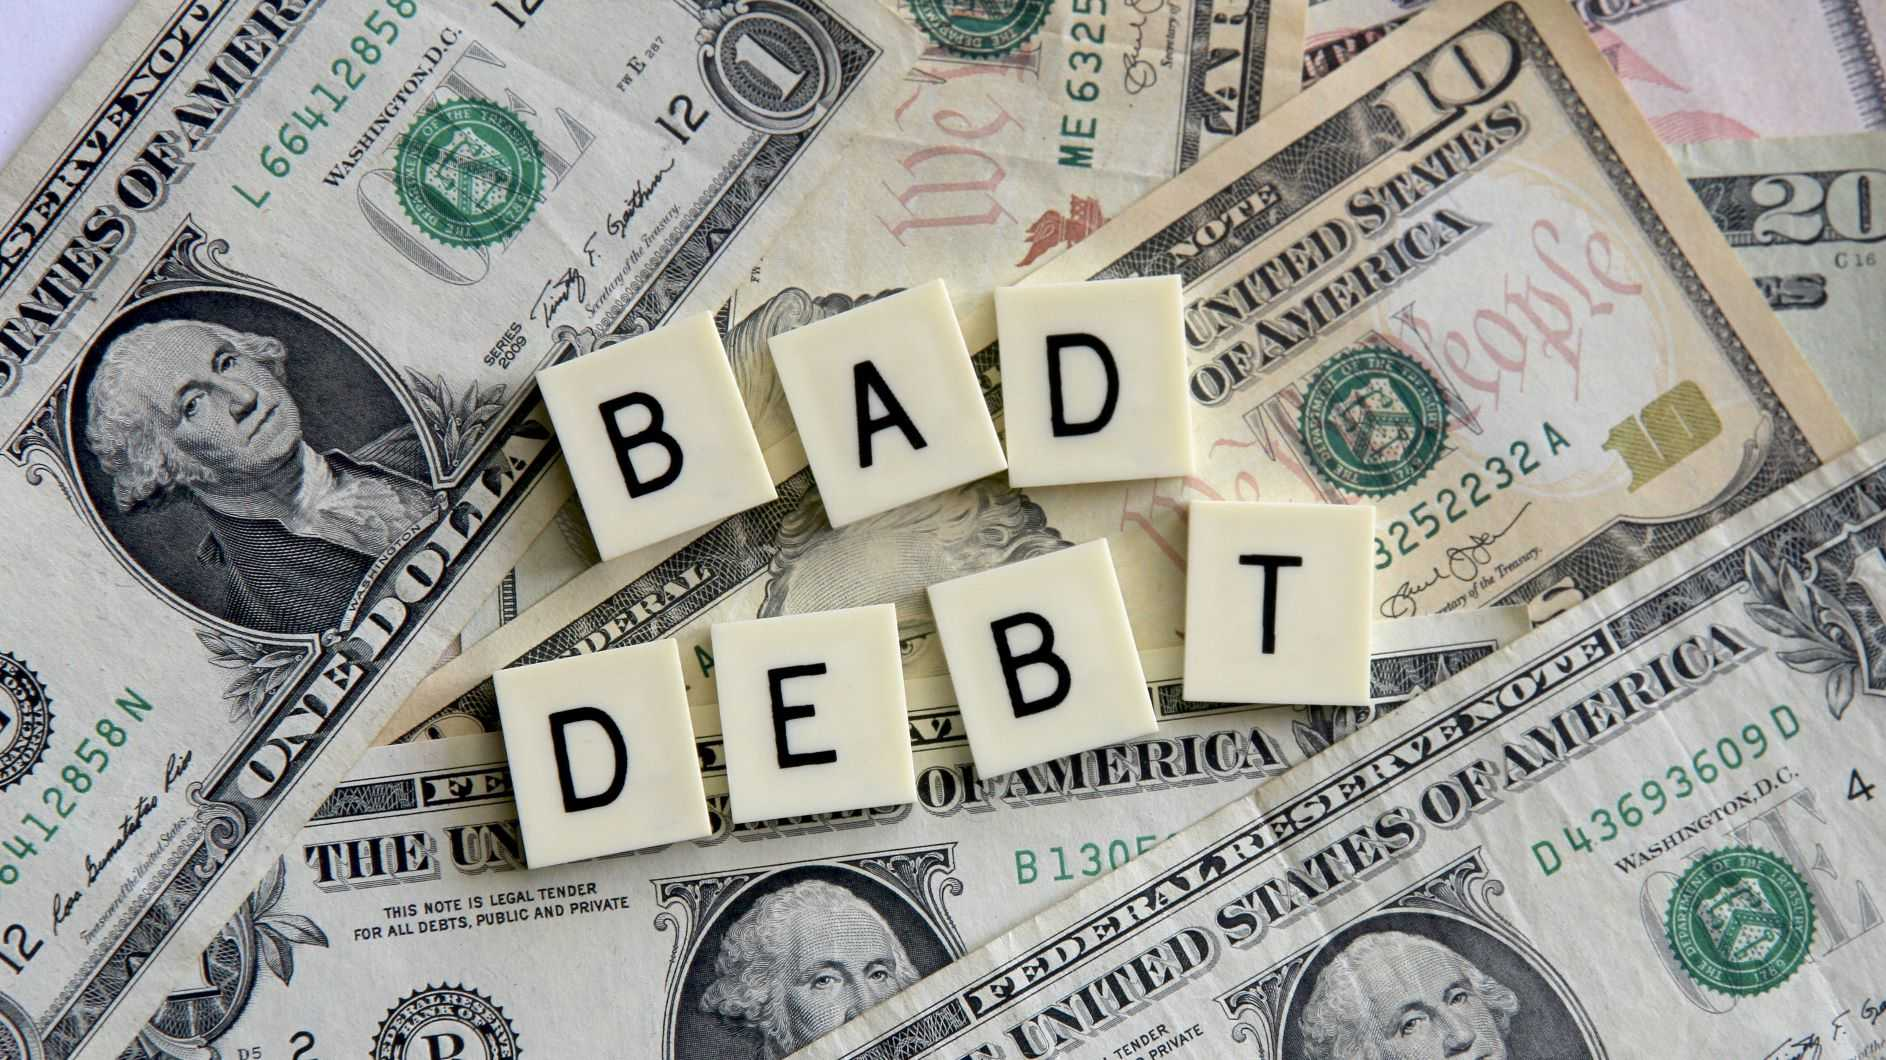 Avoid Payday Lenders & Their High-Interest Rates